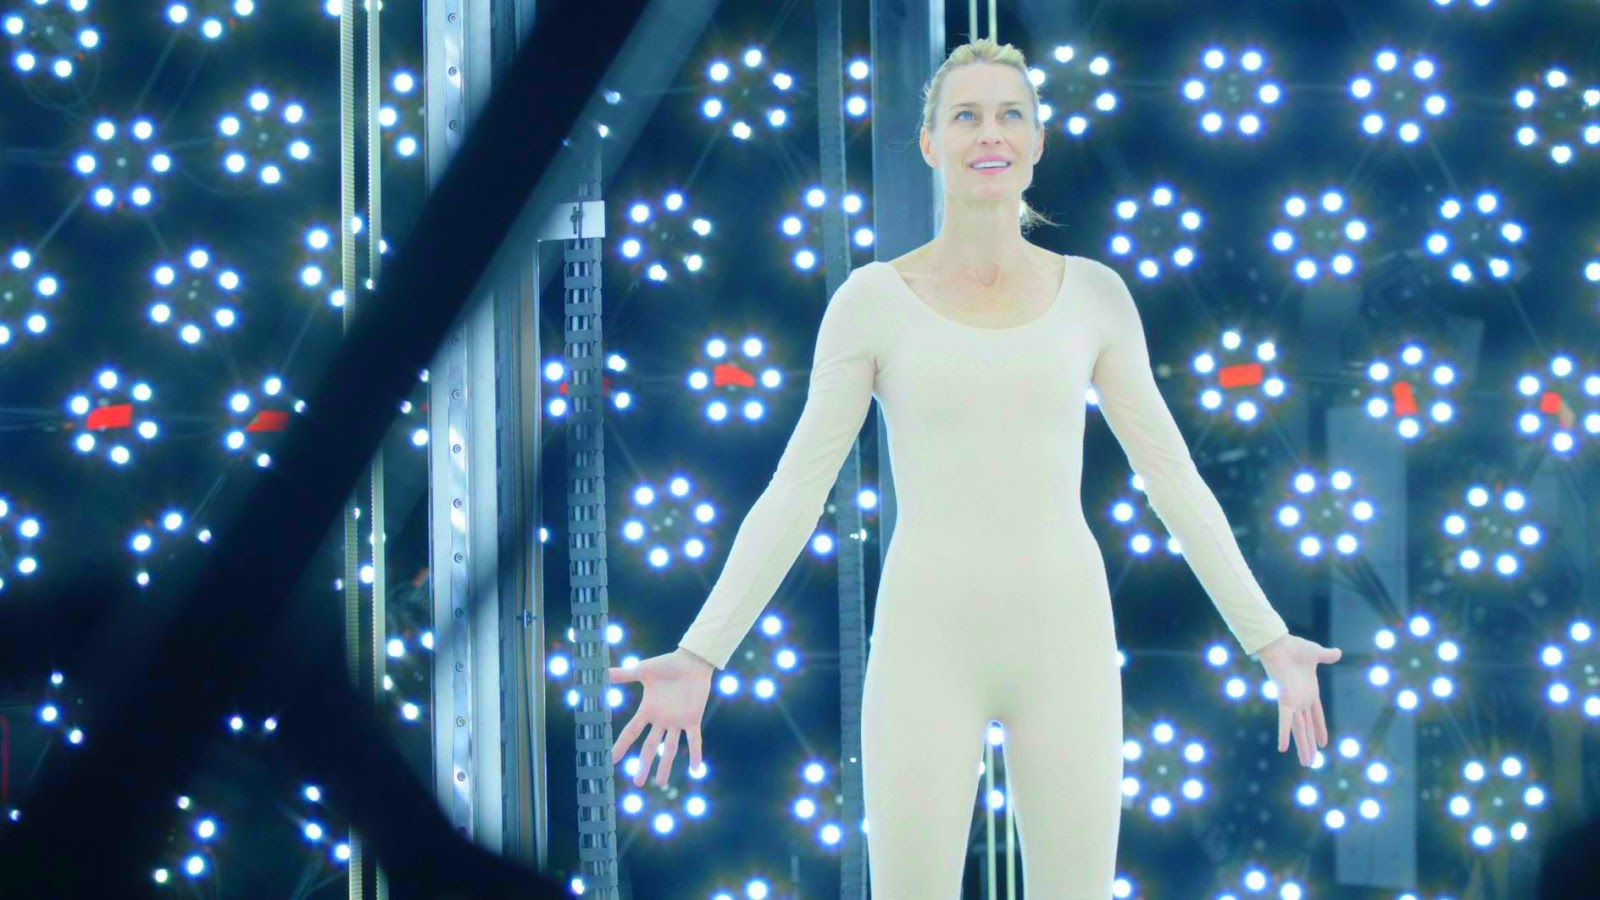 The Congress Movie Film 2014 - Sinopsis (Robin Wright)